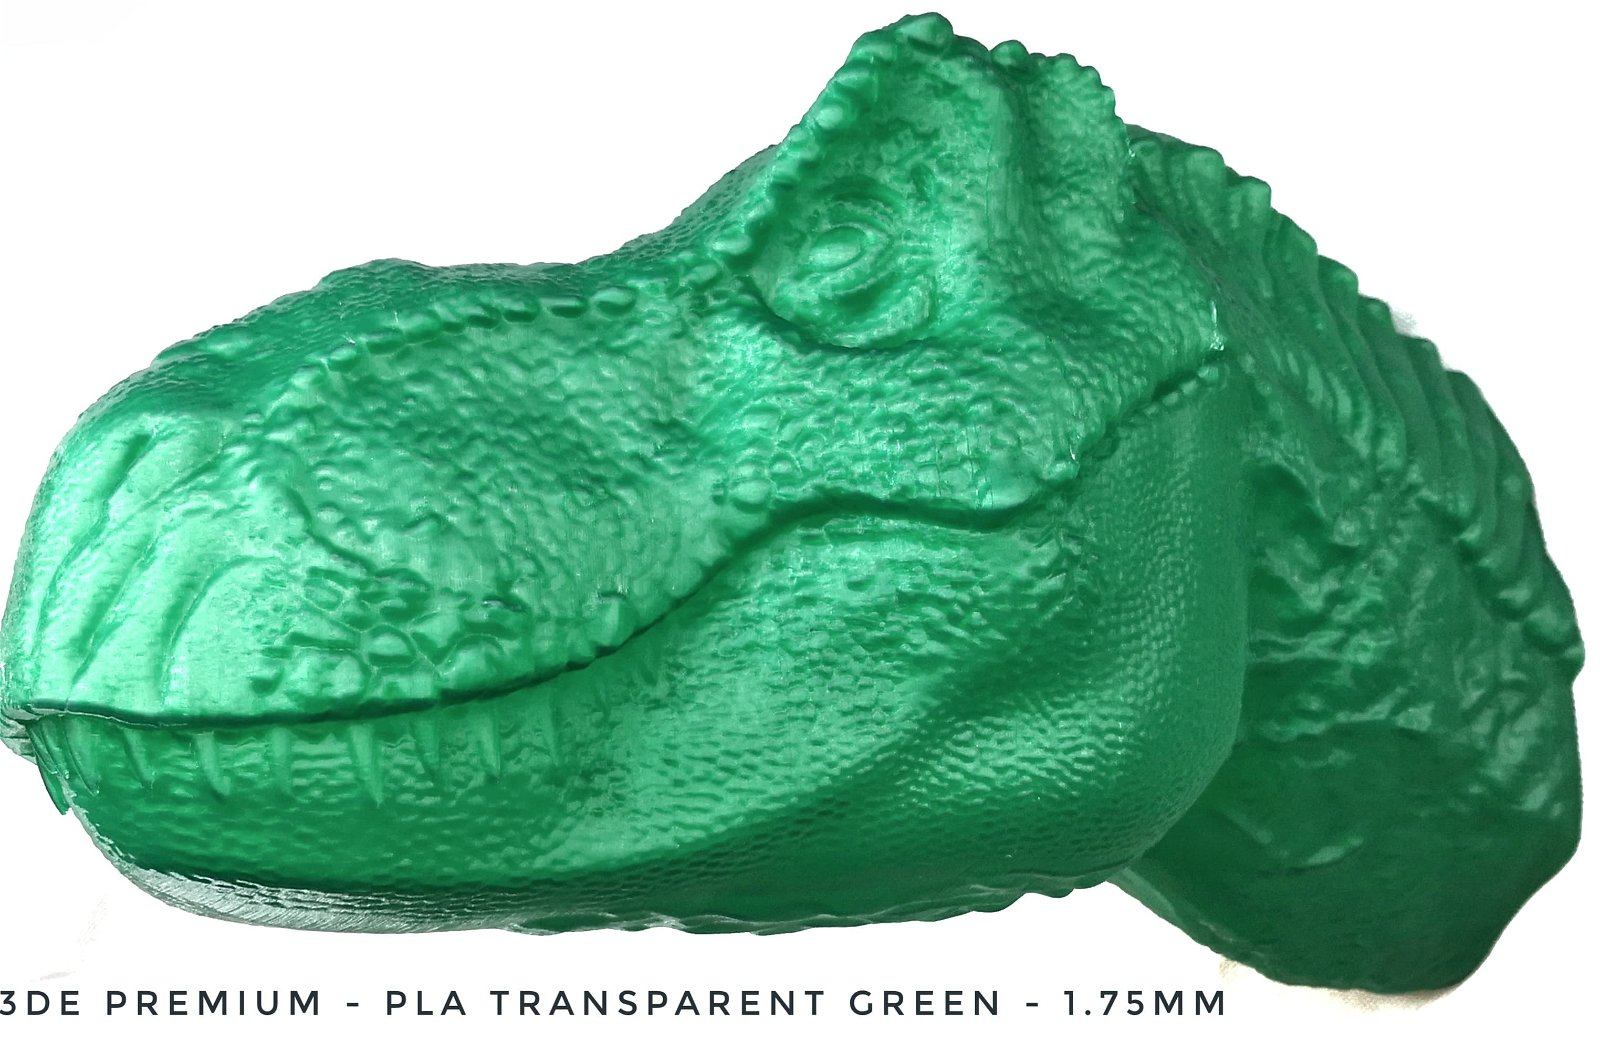 3DE Premium PLA - Transparent Green